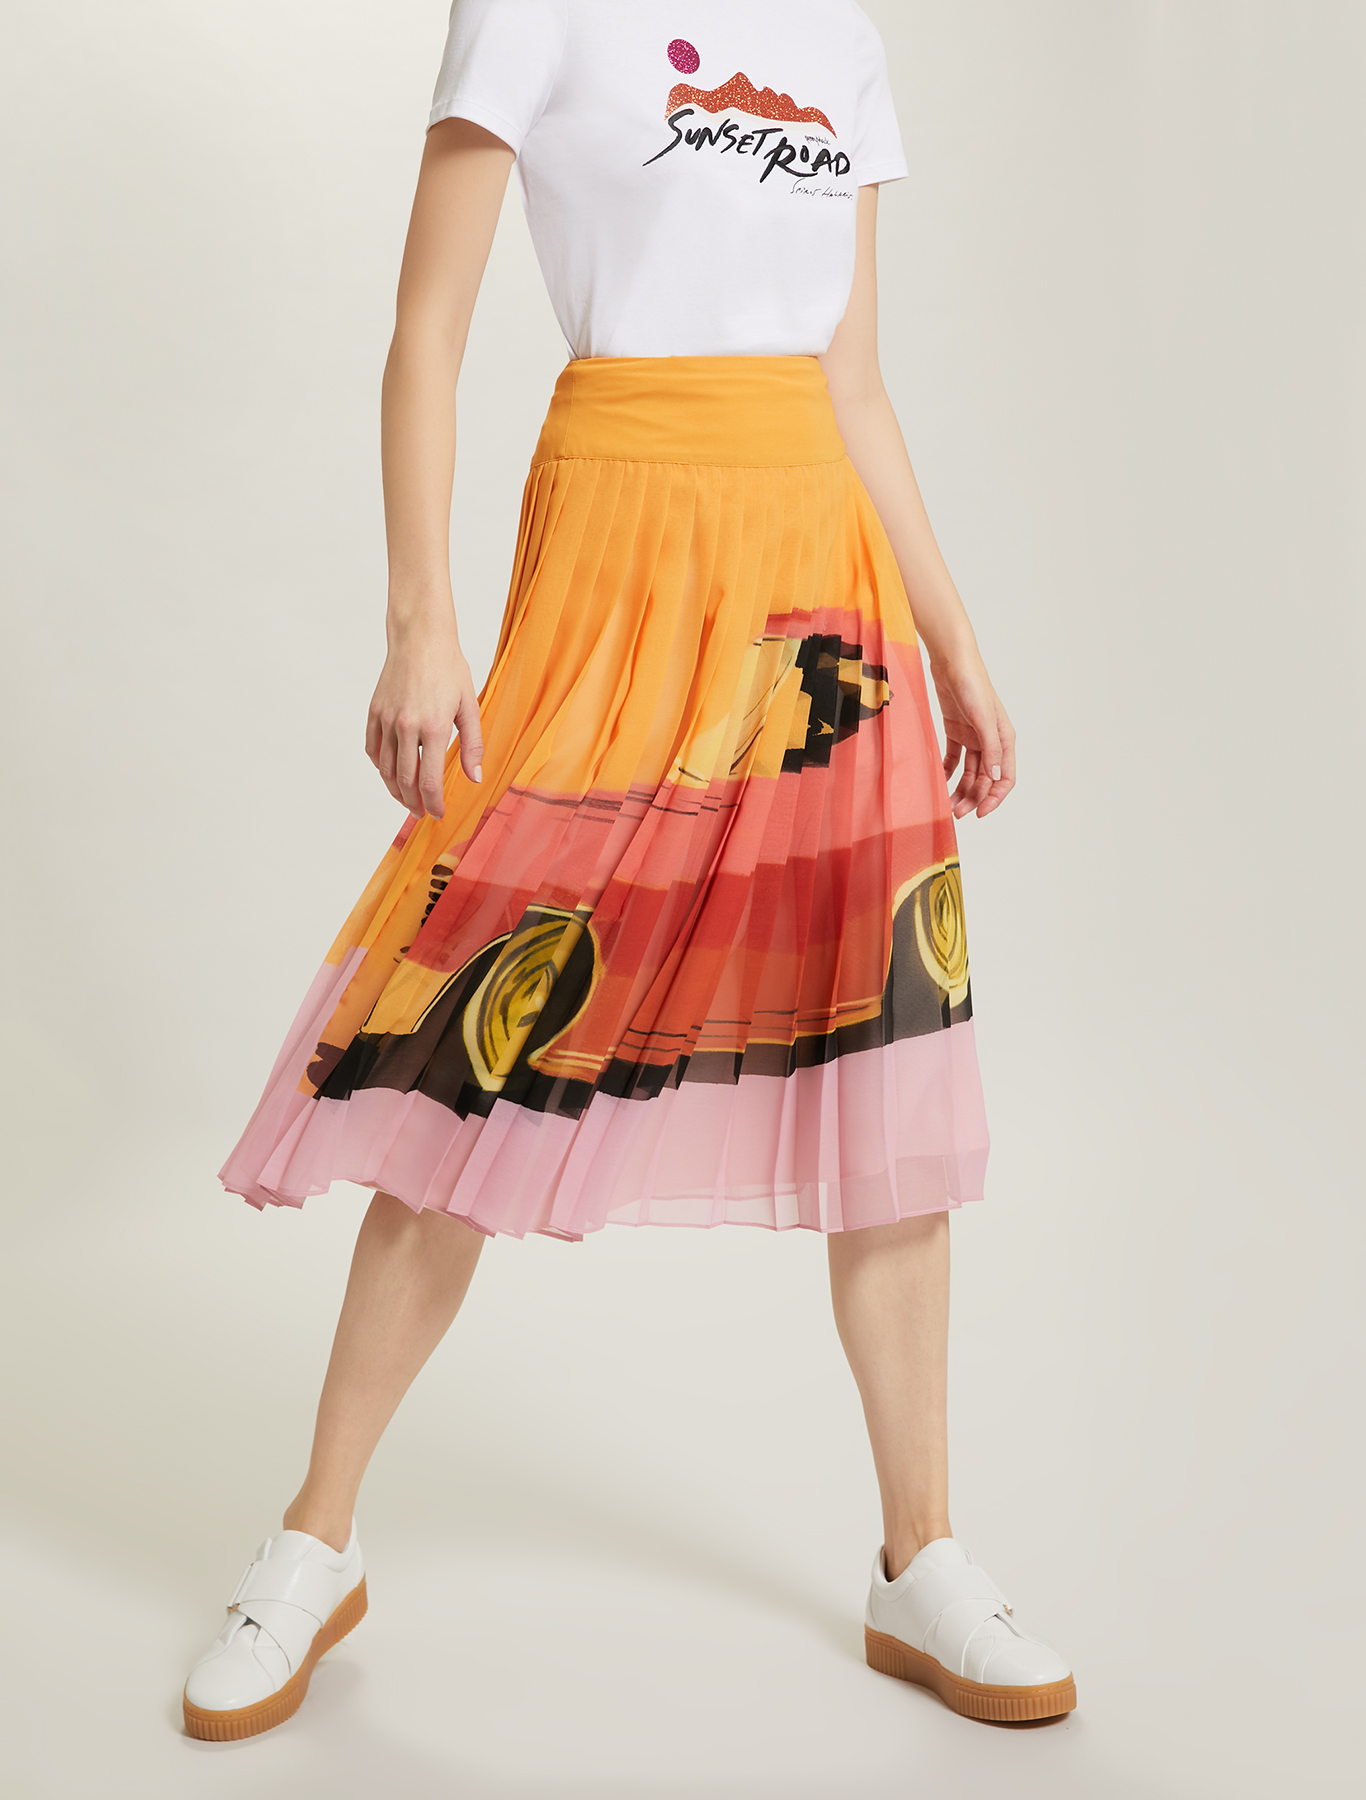 Sunset Road pleated skirt - orange pattern - pennyblack